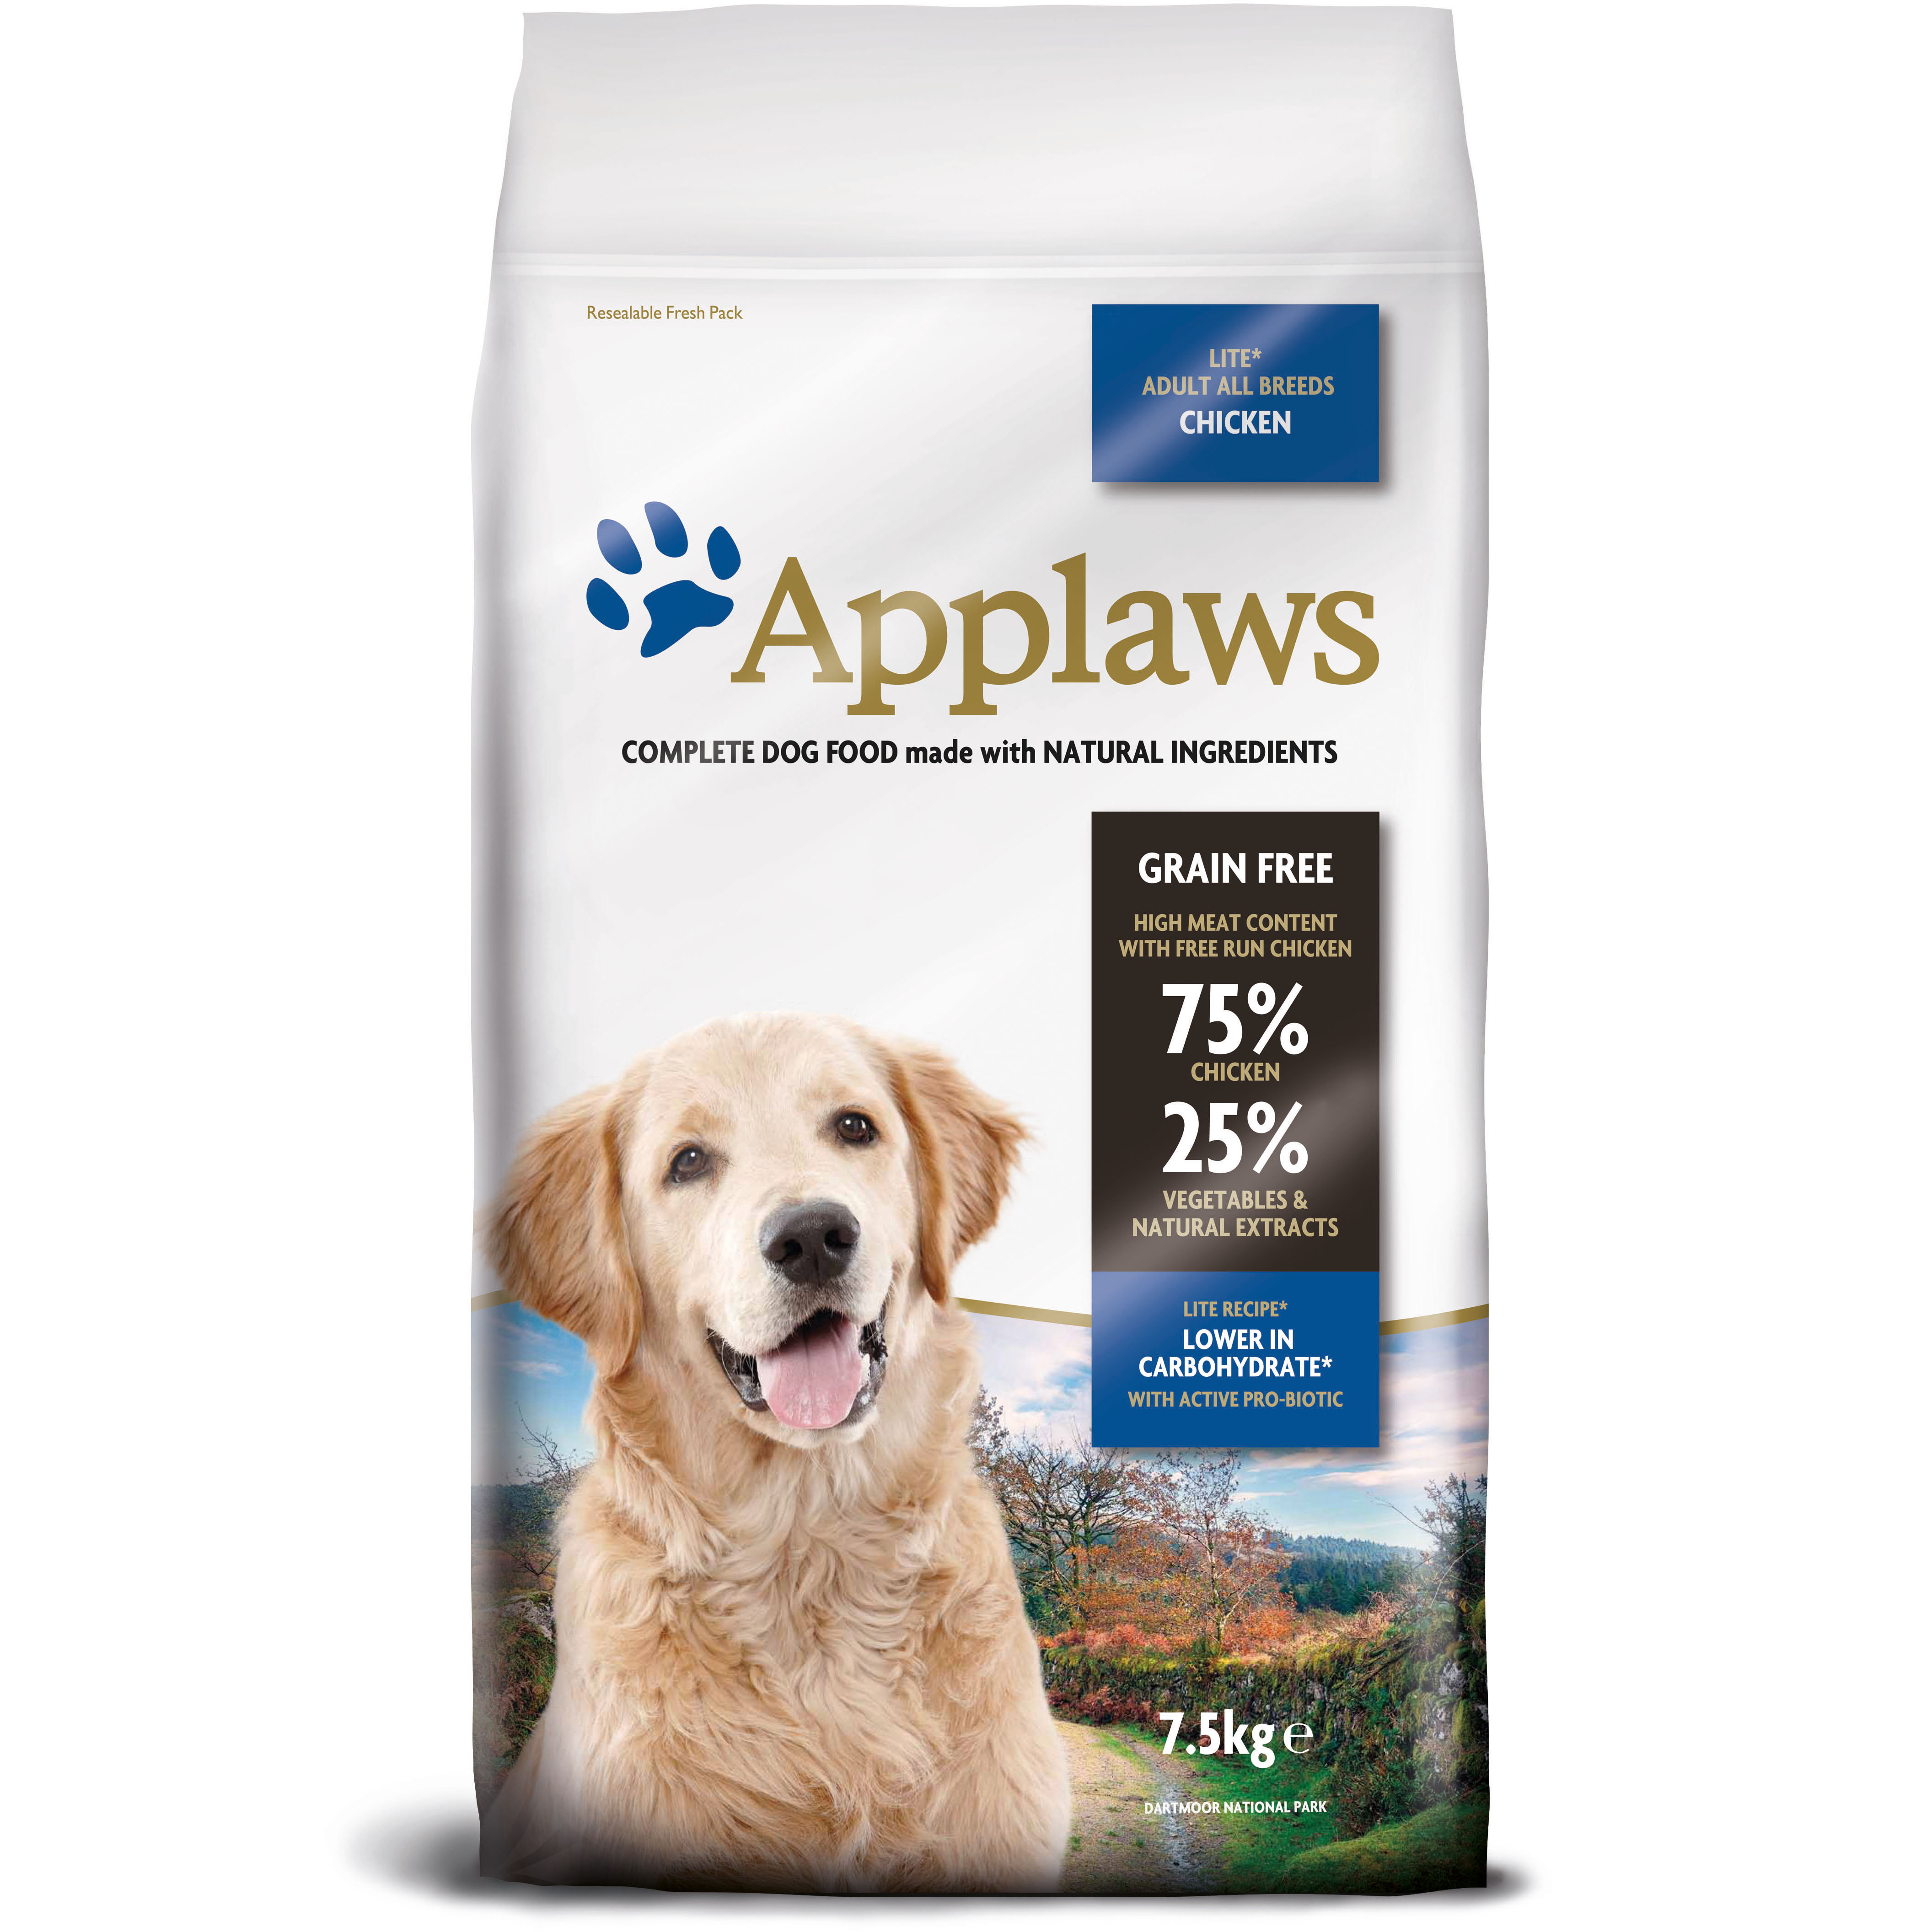 Applaws Dry Dog Food Review